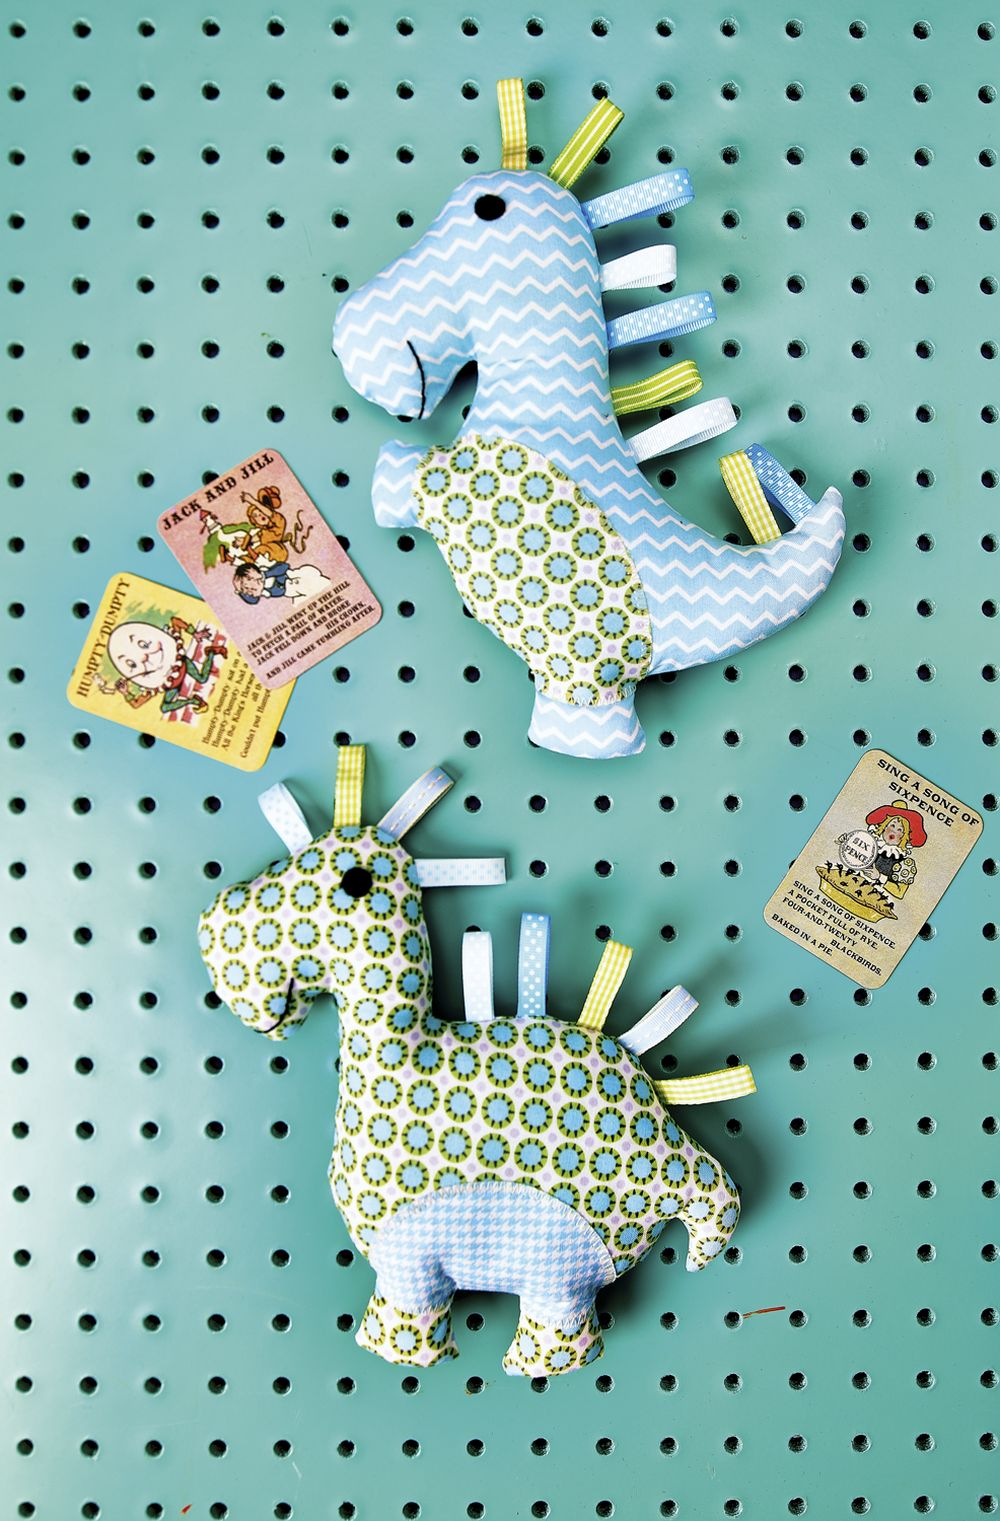 Dino Toys Free Sewing Patterns Sew Magazine